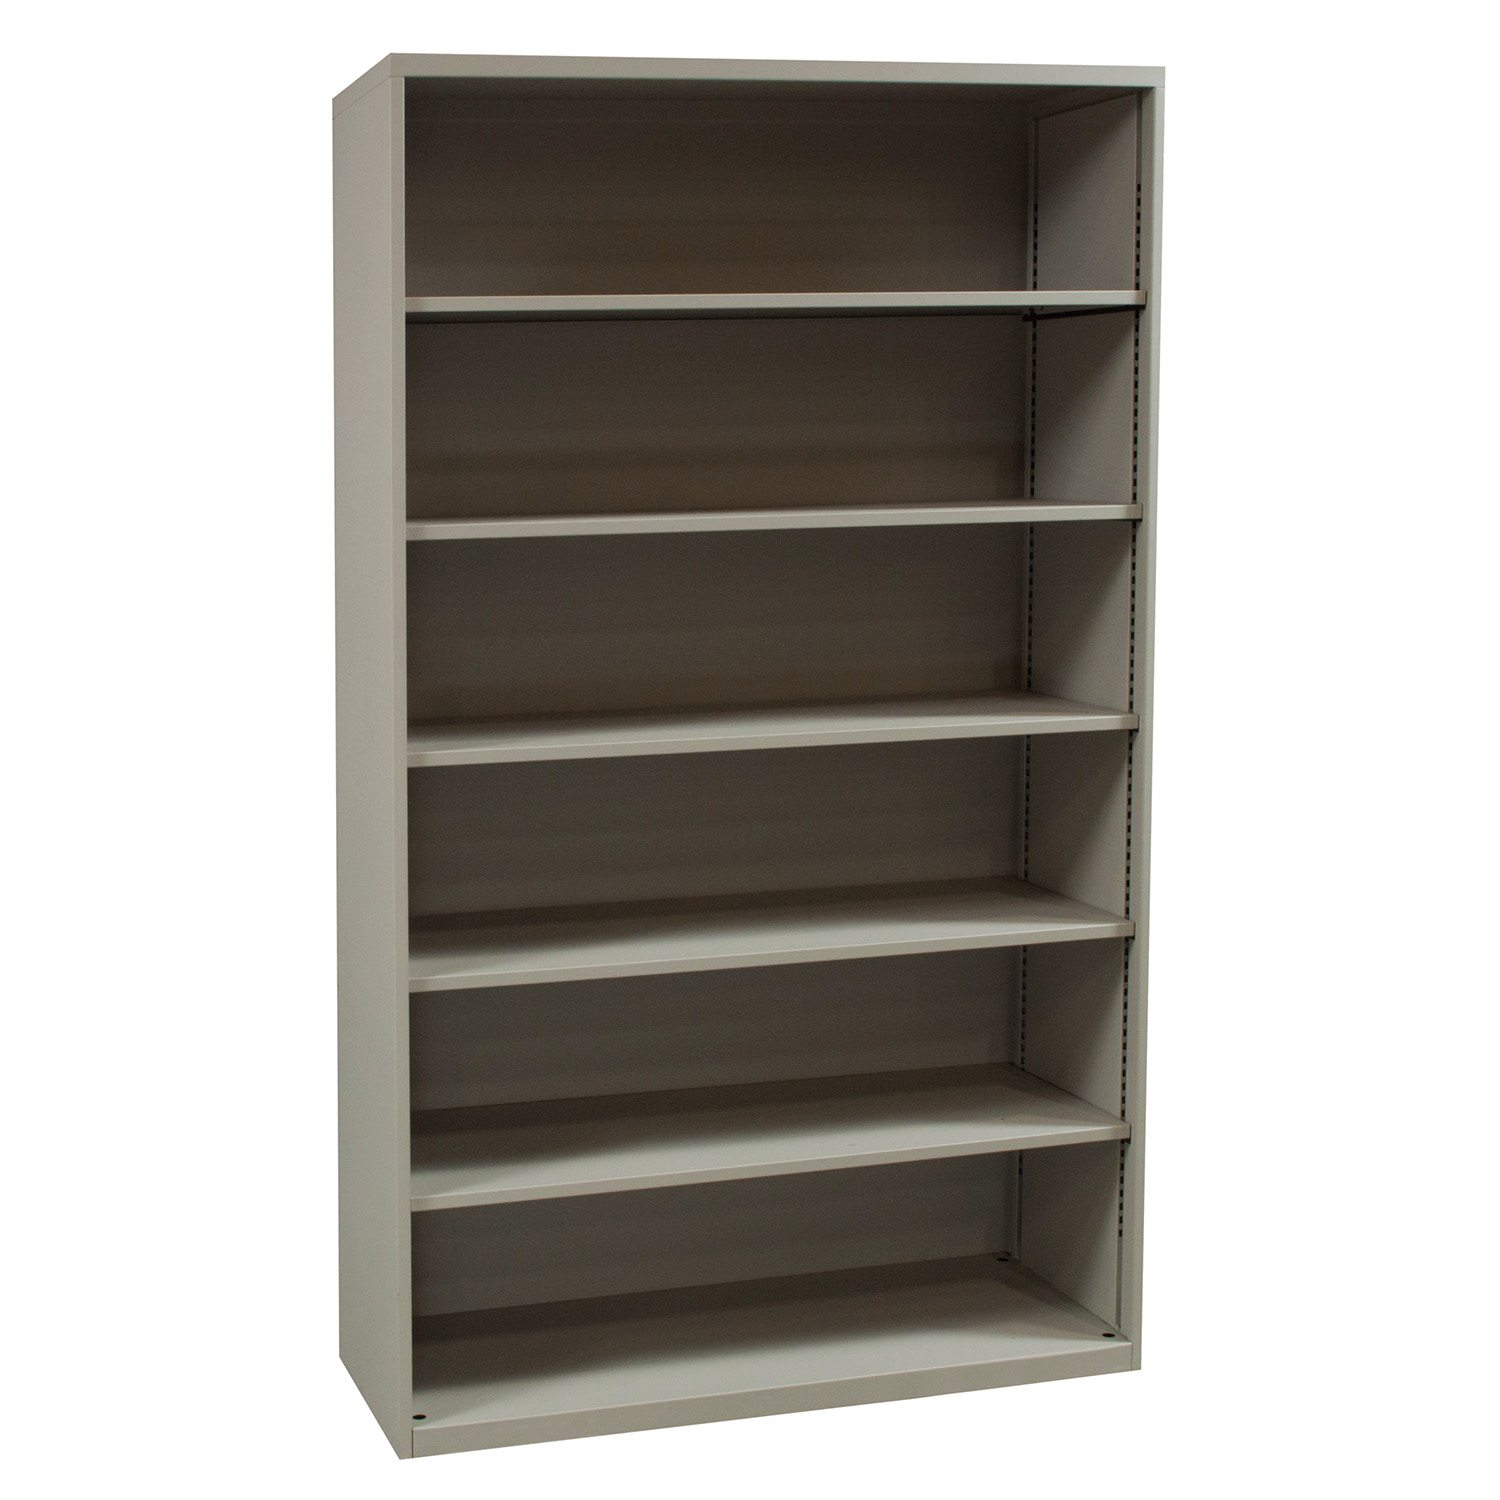 Teknion Used 6 Shelf 75 Inch Bookcase, Putty  National